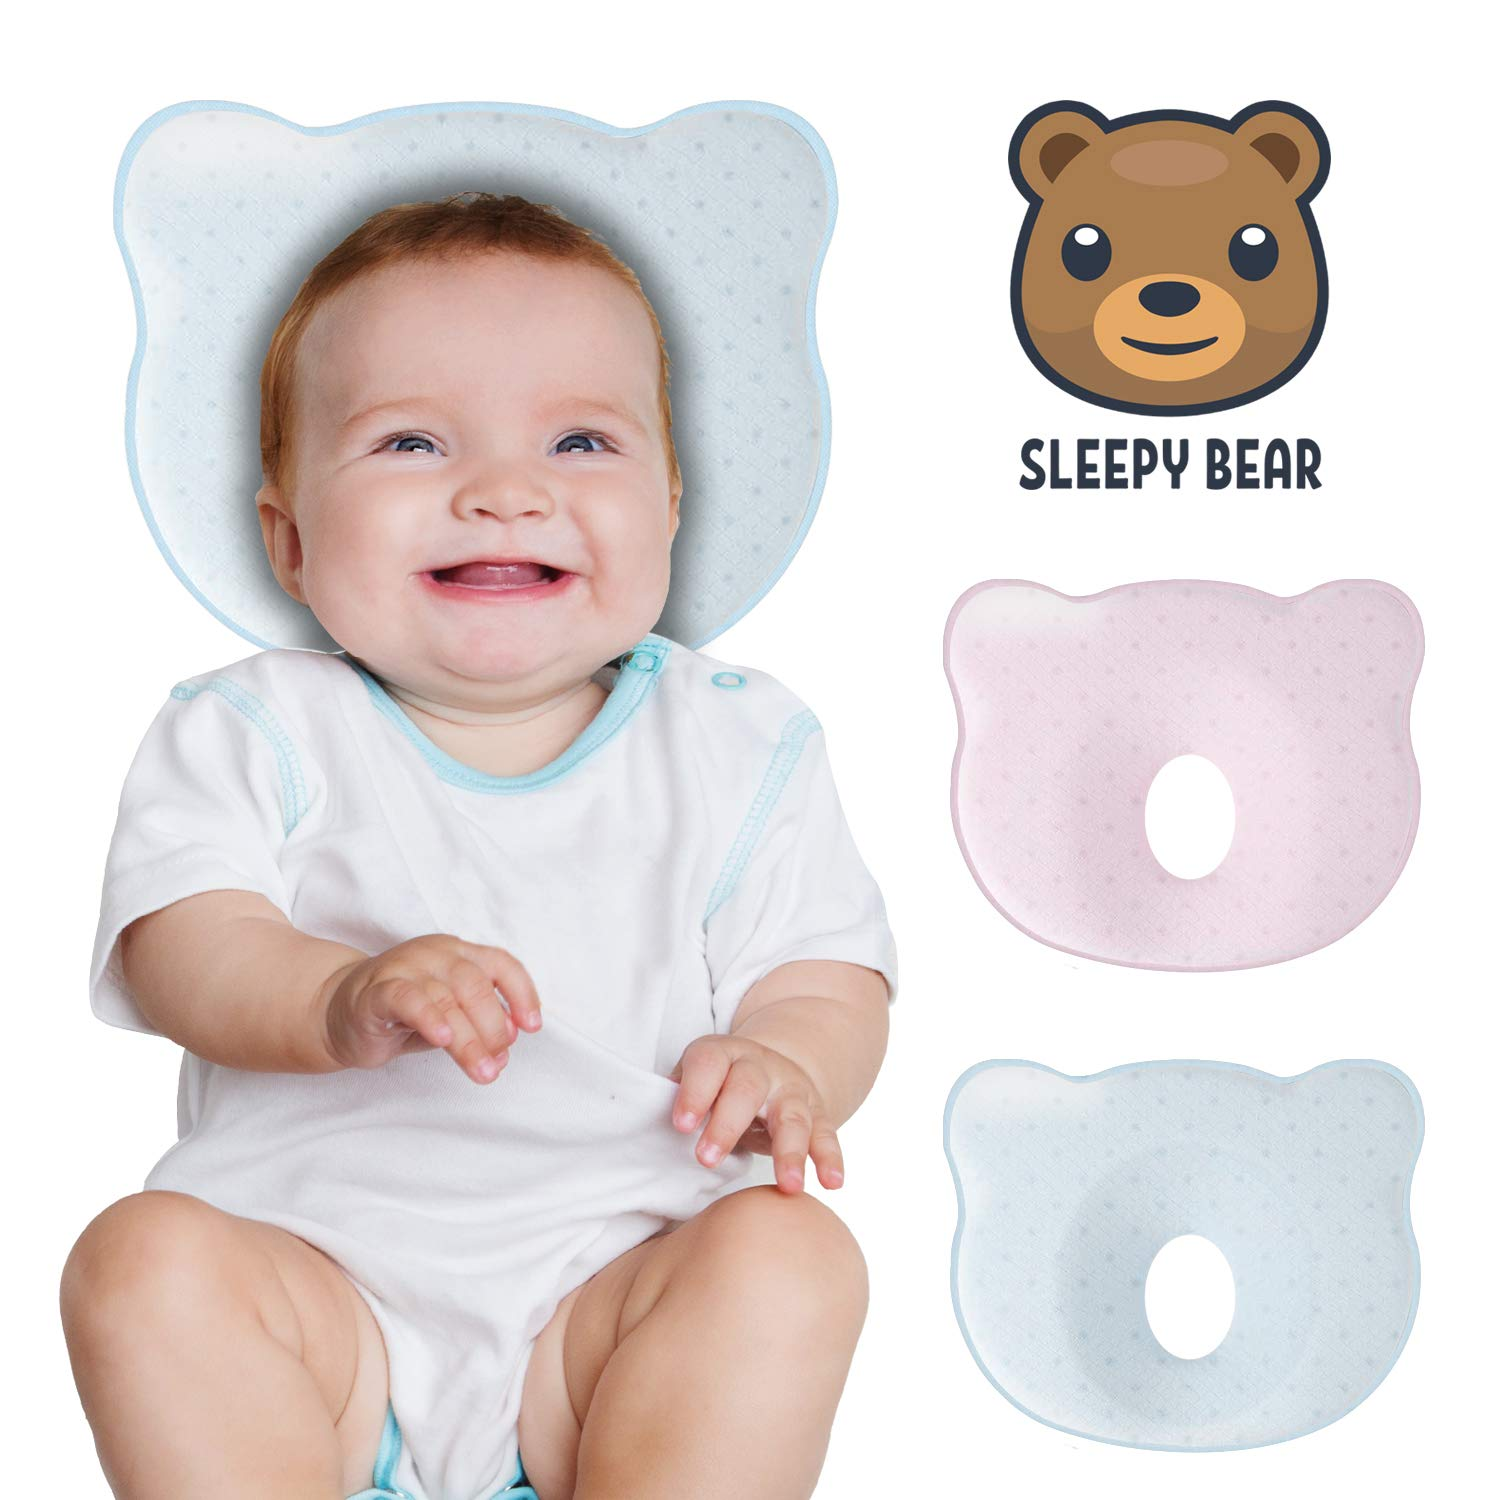 Baby Head Shaping Memory Foam Pillow | Prevent Newborn Infant Plagiocephaly Flat Head Syndrome | Super Soft, Comfortable & Supportive (Blue)